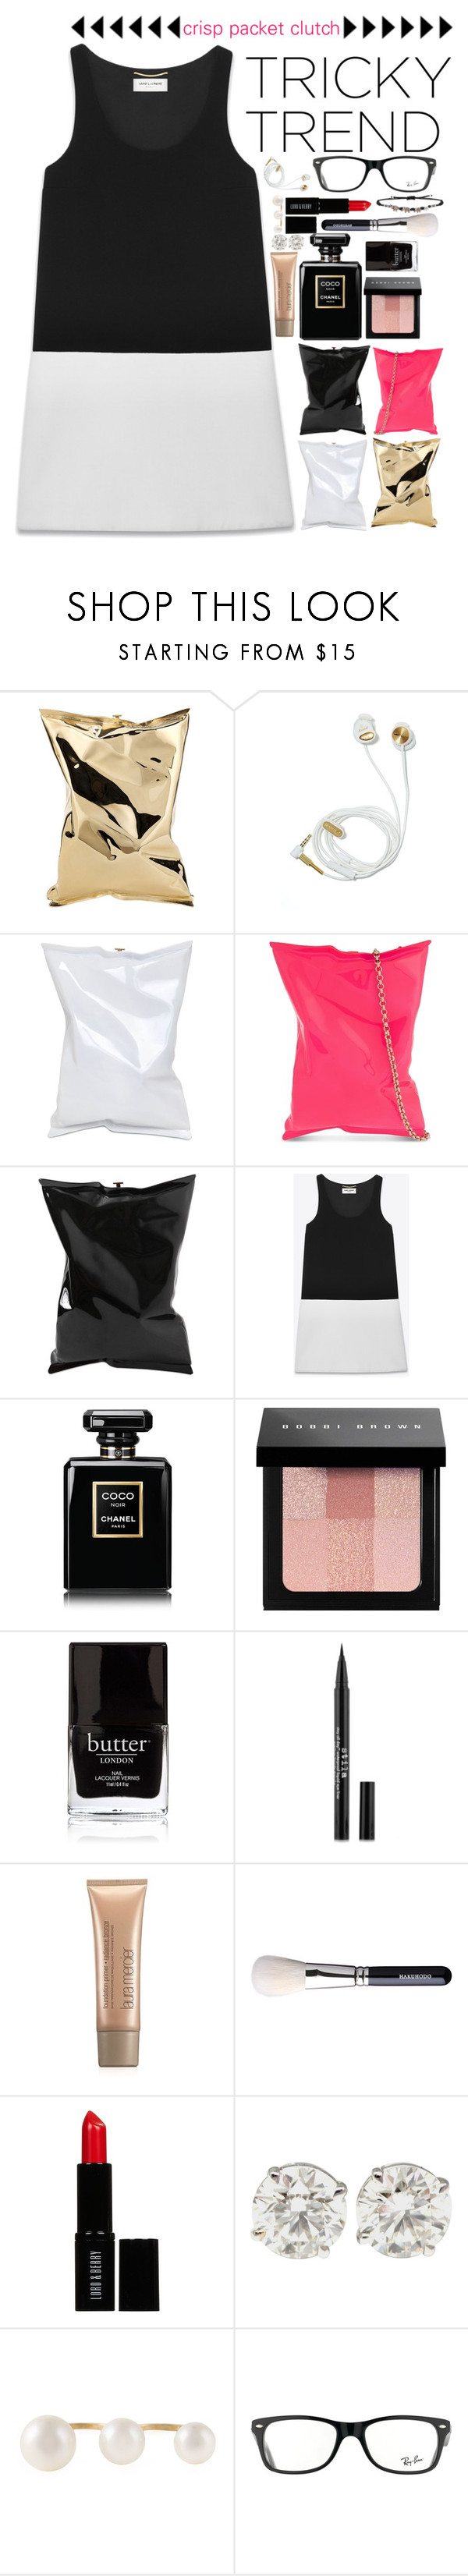 """""""Tricky Trend: Anya Hindmarch crisp packet clutch."""" by noa5353 ❤ liked on Polyvore featuring Anya Hindmarch, Yves Saint Laurent, Chanel, Bobbi Brown Cosmetics, Butter London, M&S, Laura Mercier, Lord & Berry, Delfina Delettrez and Ray-Ban"""